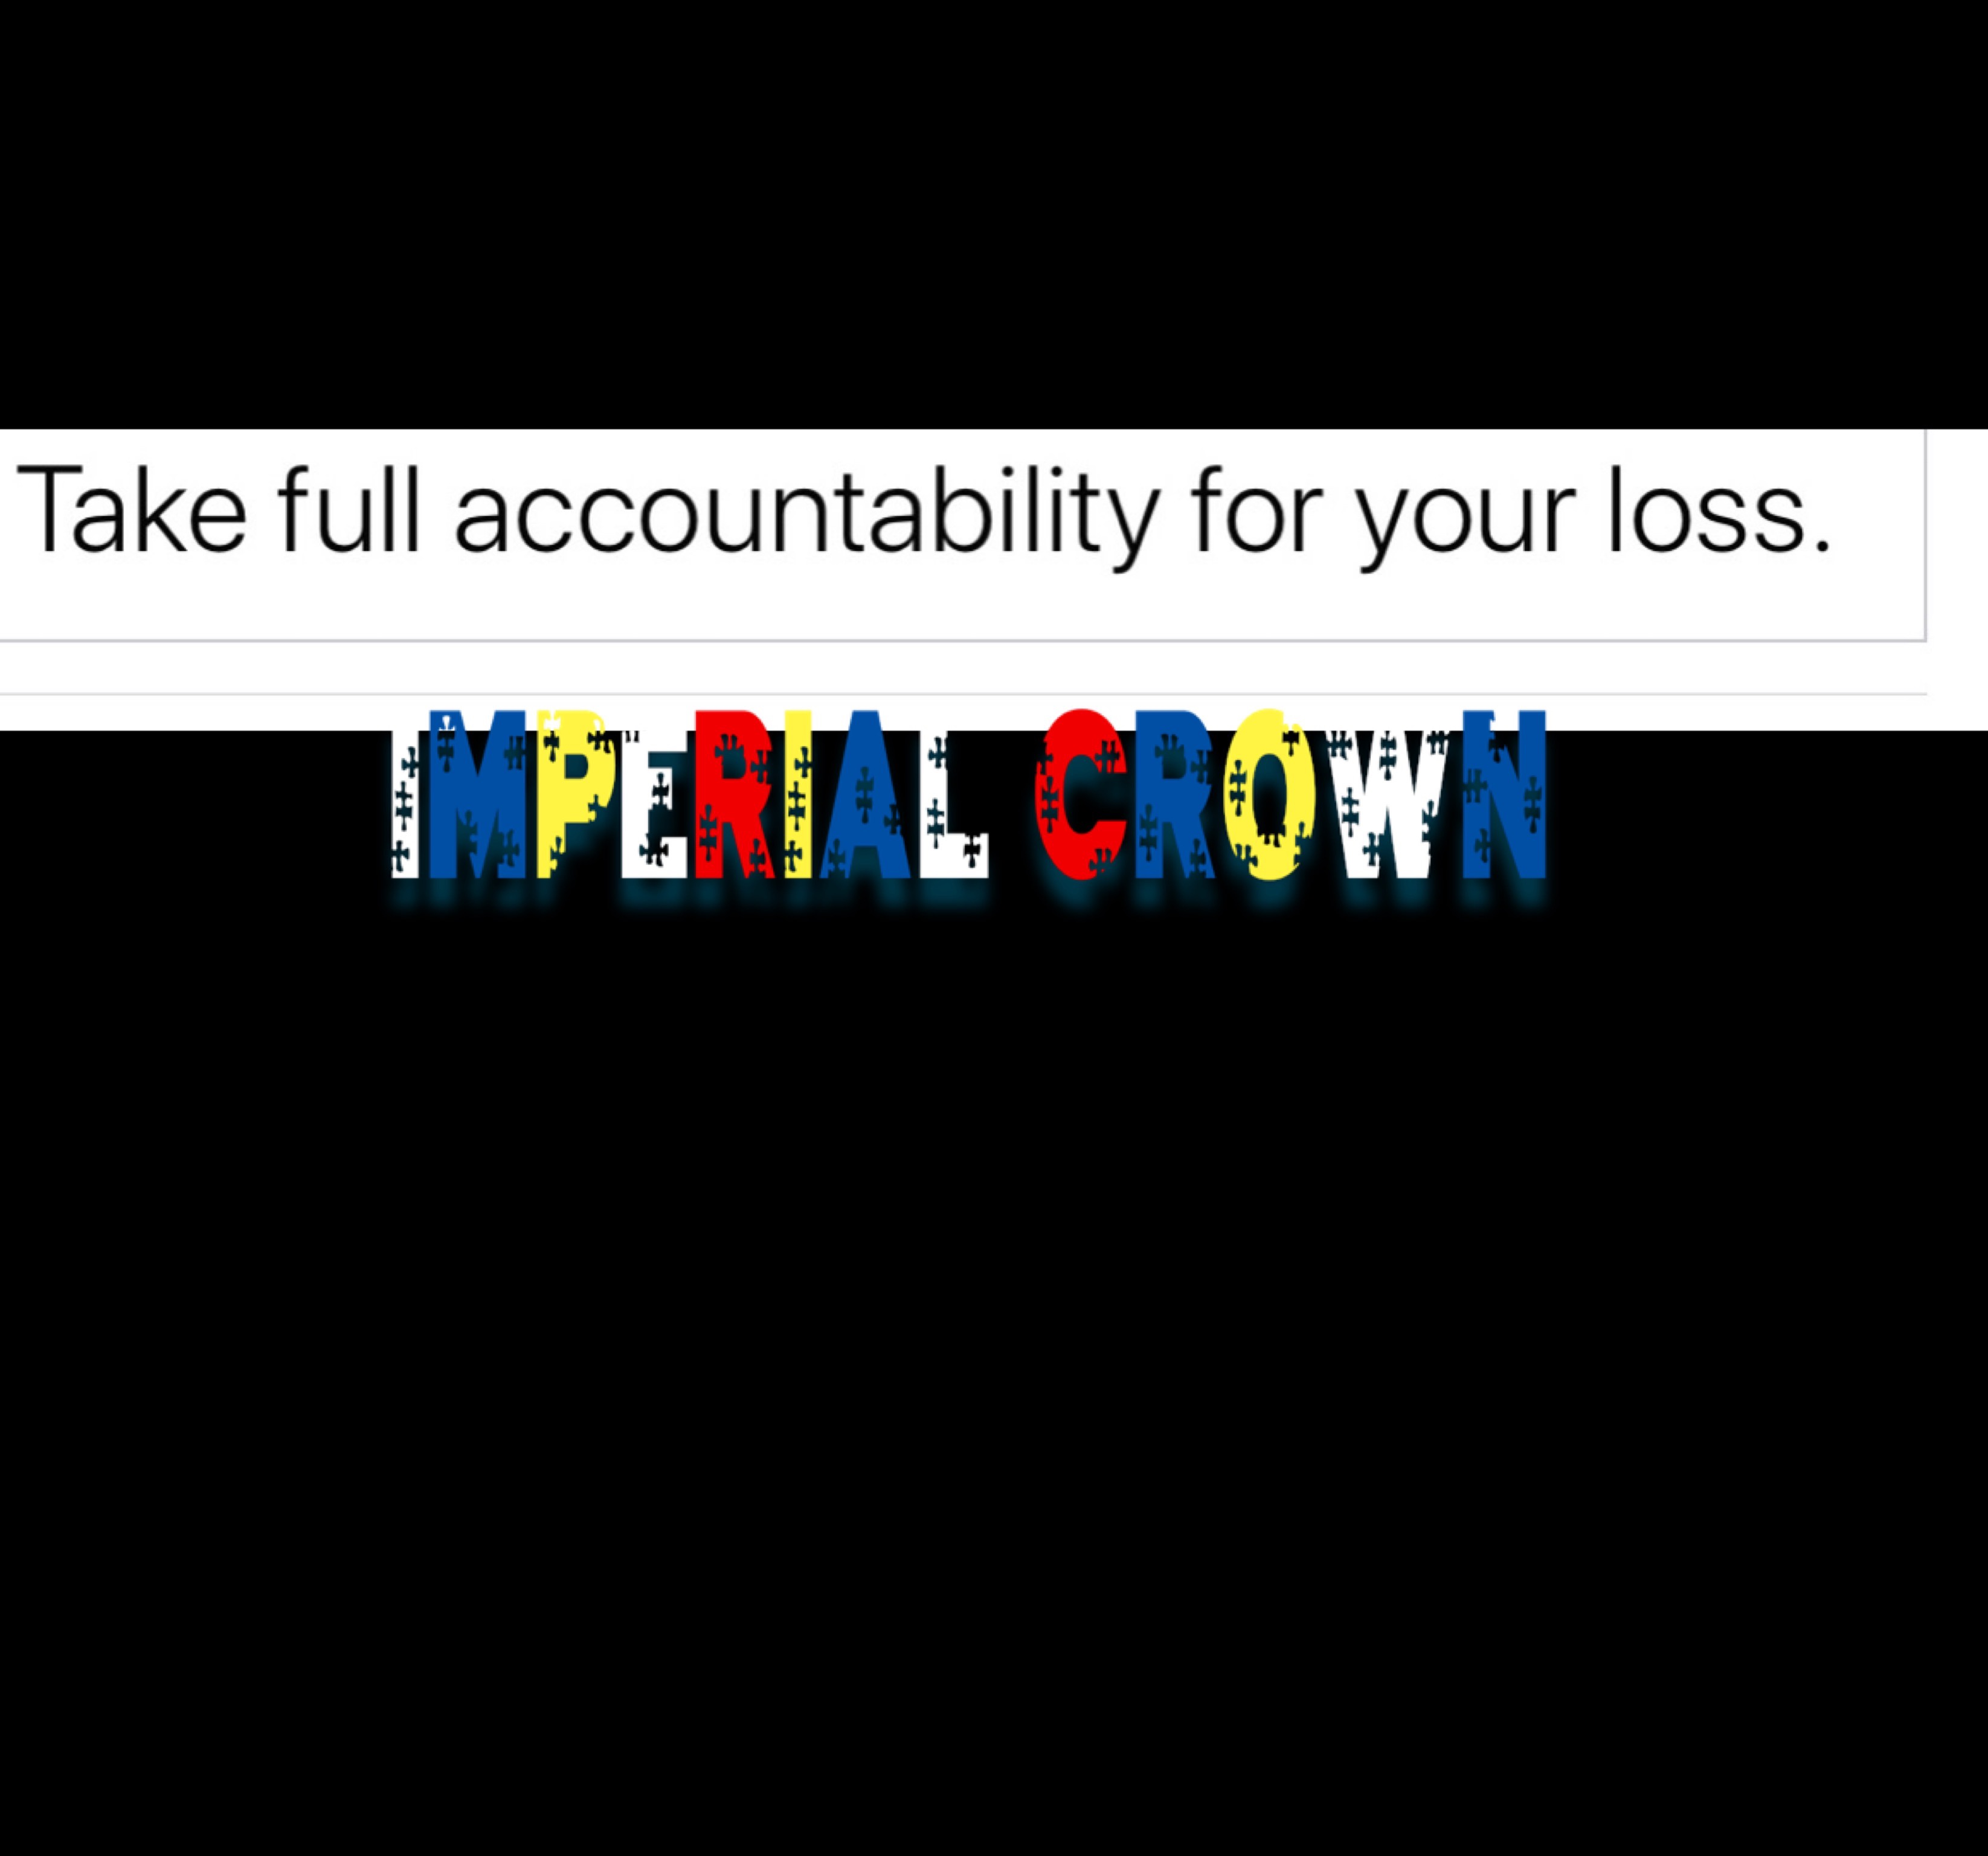 Take full accountability for your loss